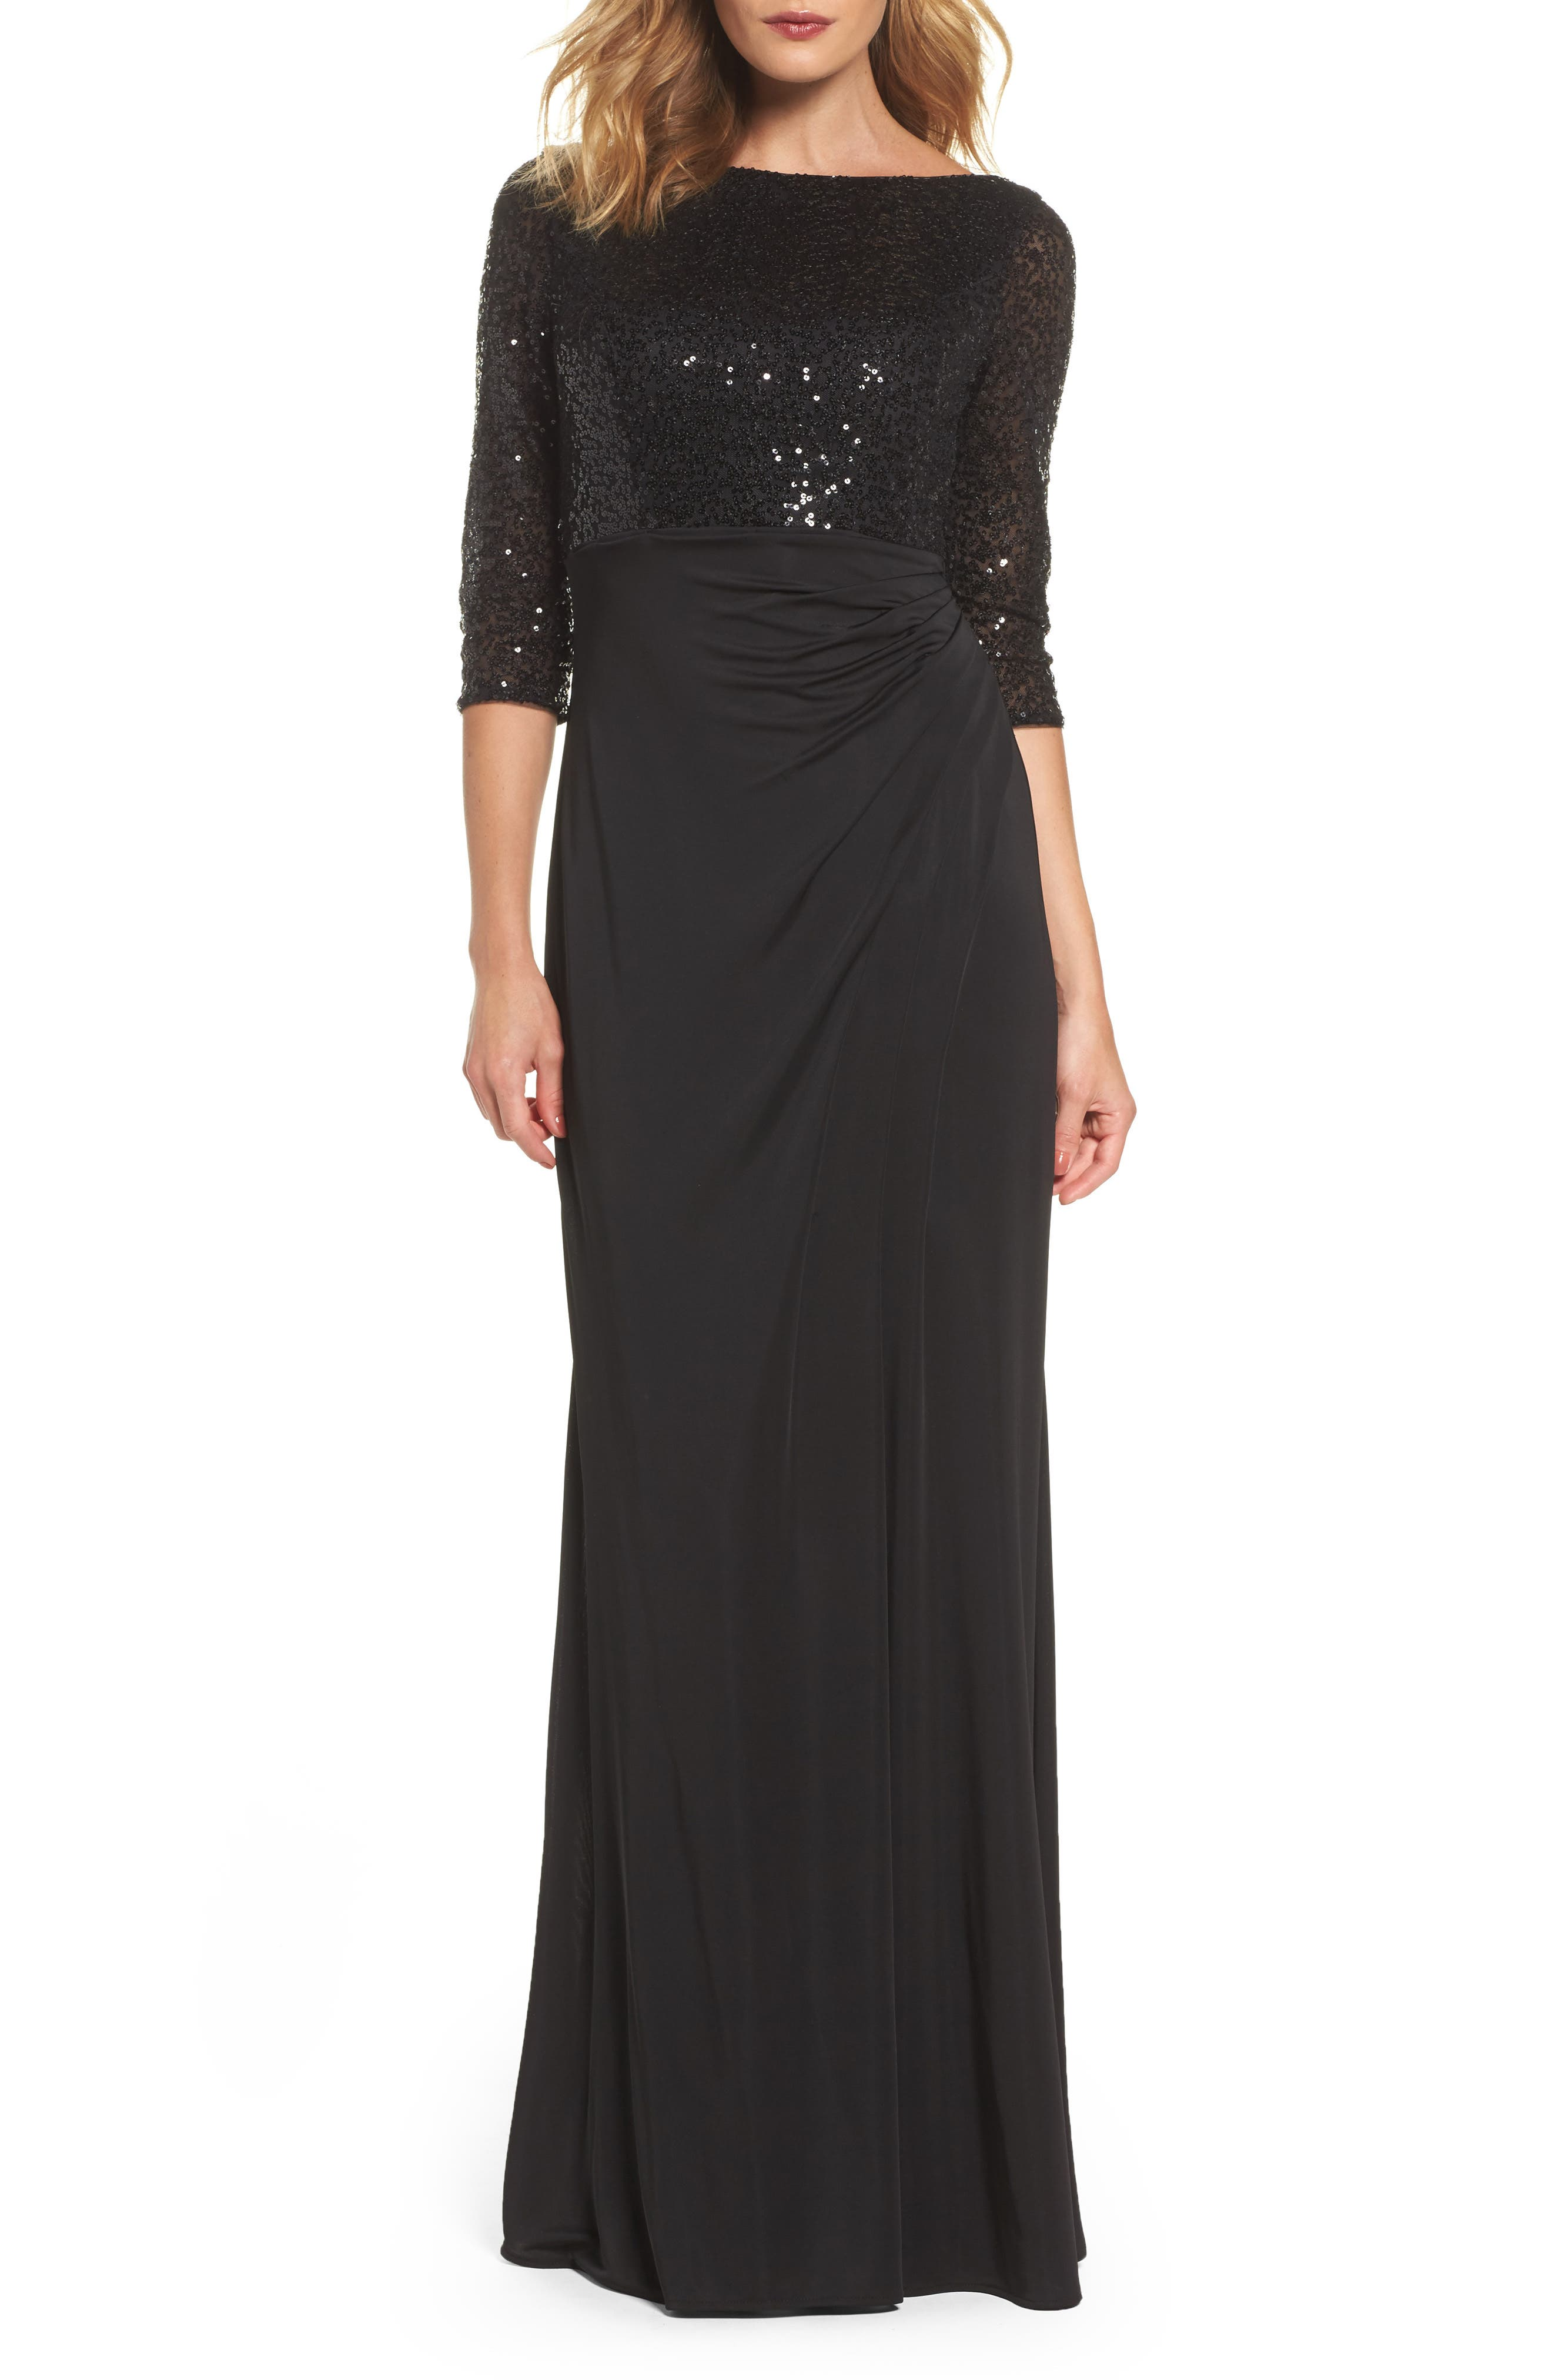 Alternate Image 1 Selected - La Femme Sequin & Jersey Gown